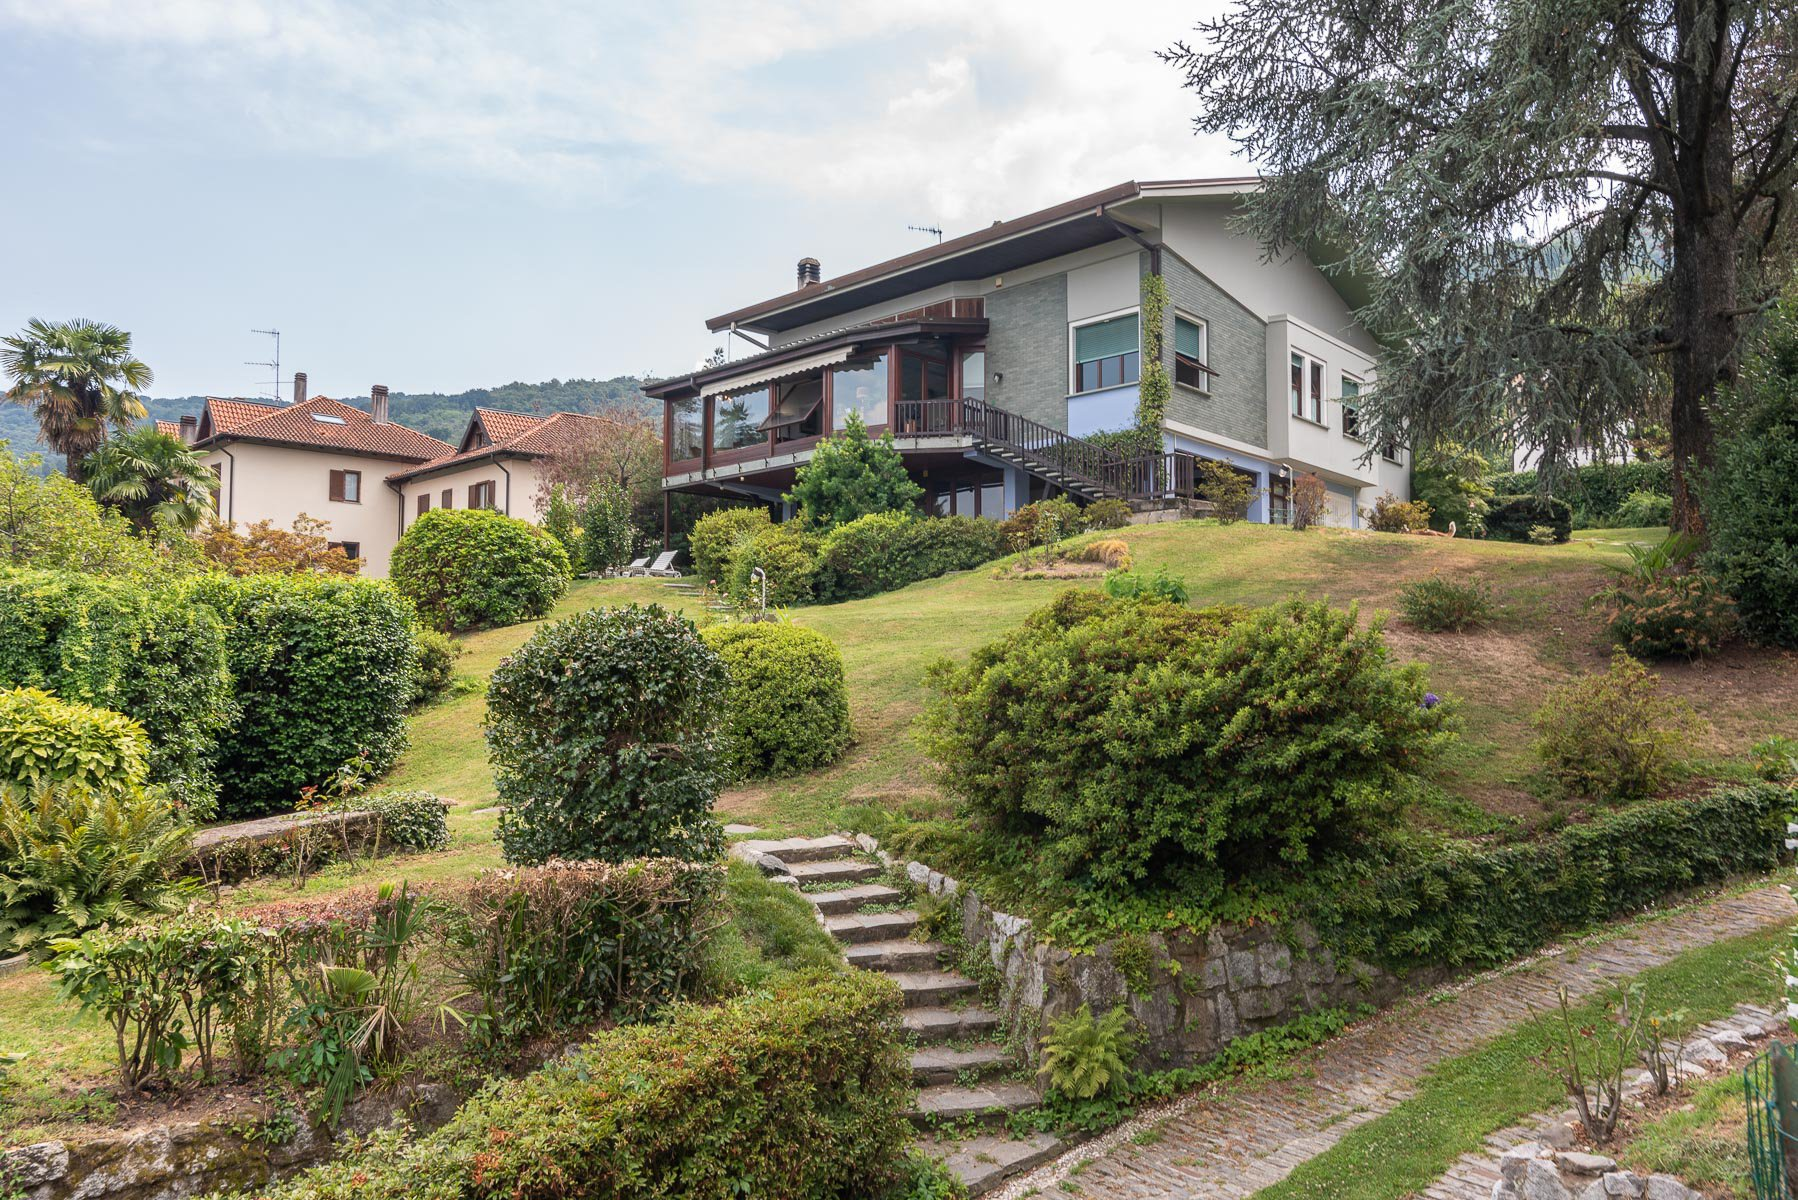 Luxury villa for sale in Stresa with garden